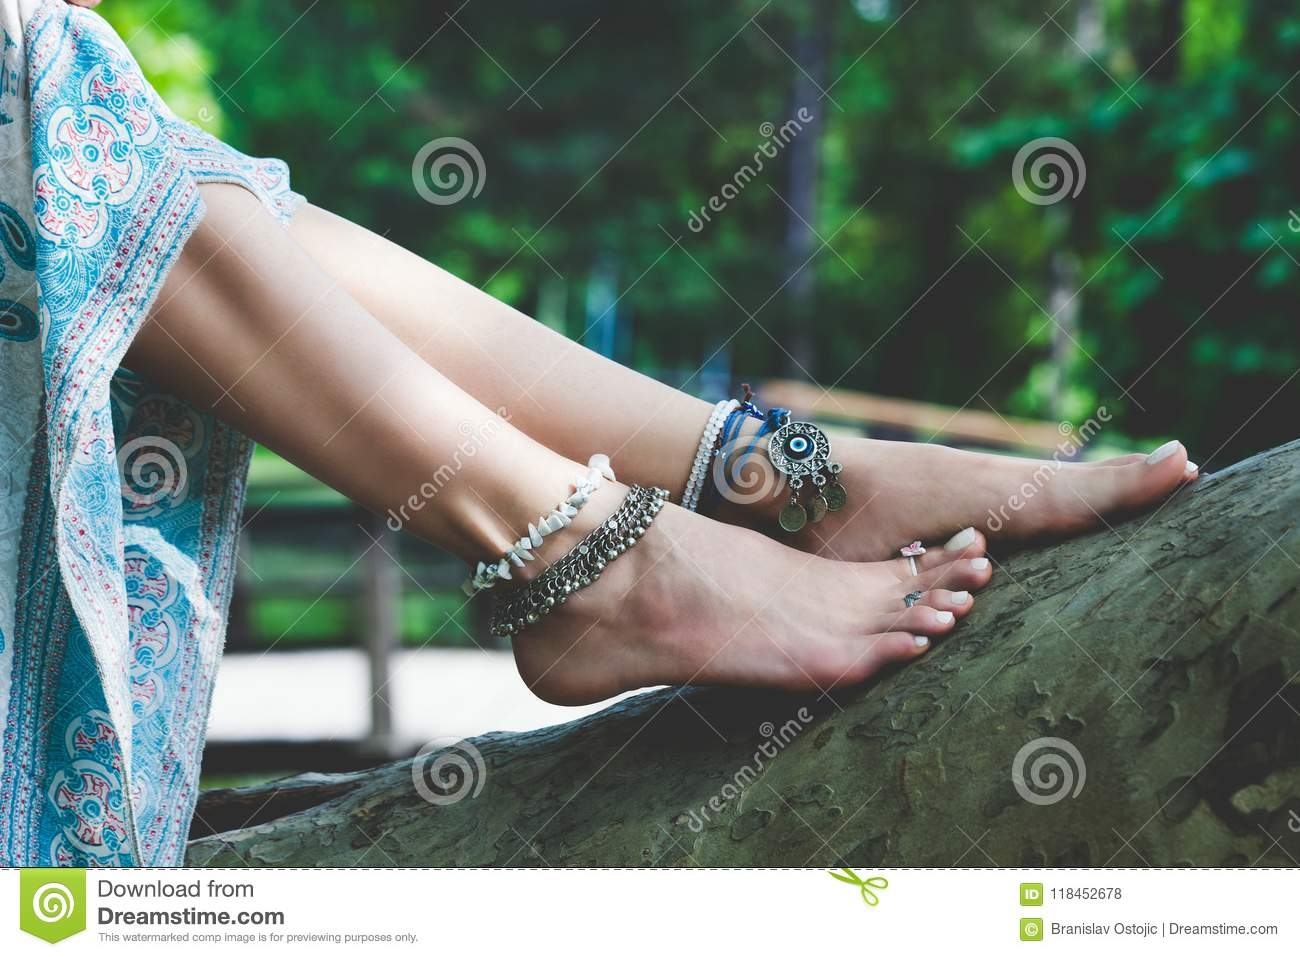 https://thumbs.dreamstime.com/z/woman-summer-boho-fashion-style-details-barefoot-anklets-rings-outdoor-lean-tree-woman-summer-boho-fashion-style-details-118452678.jpg